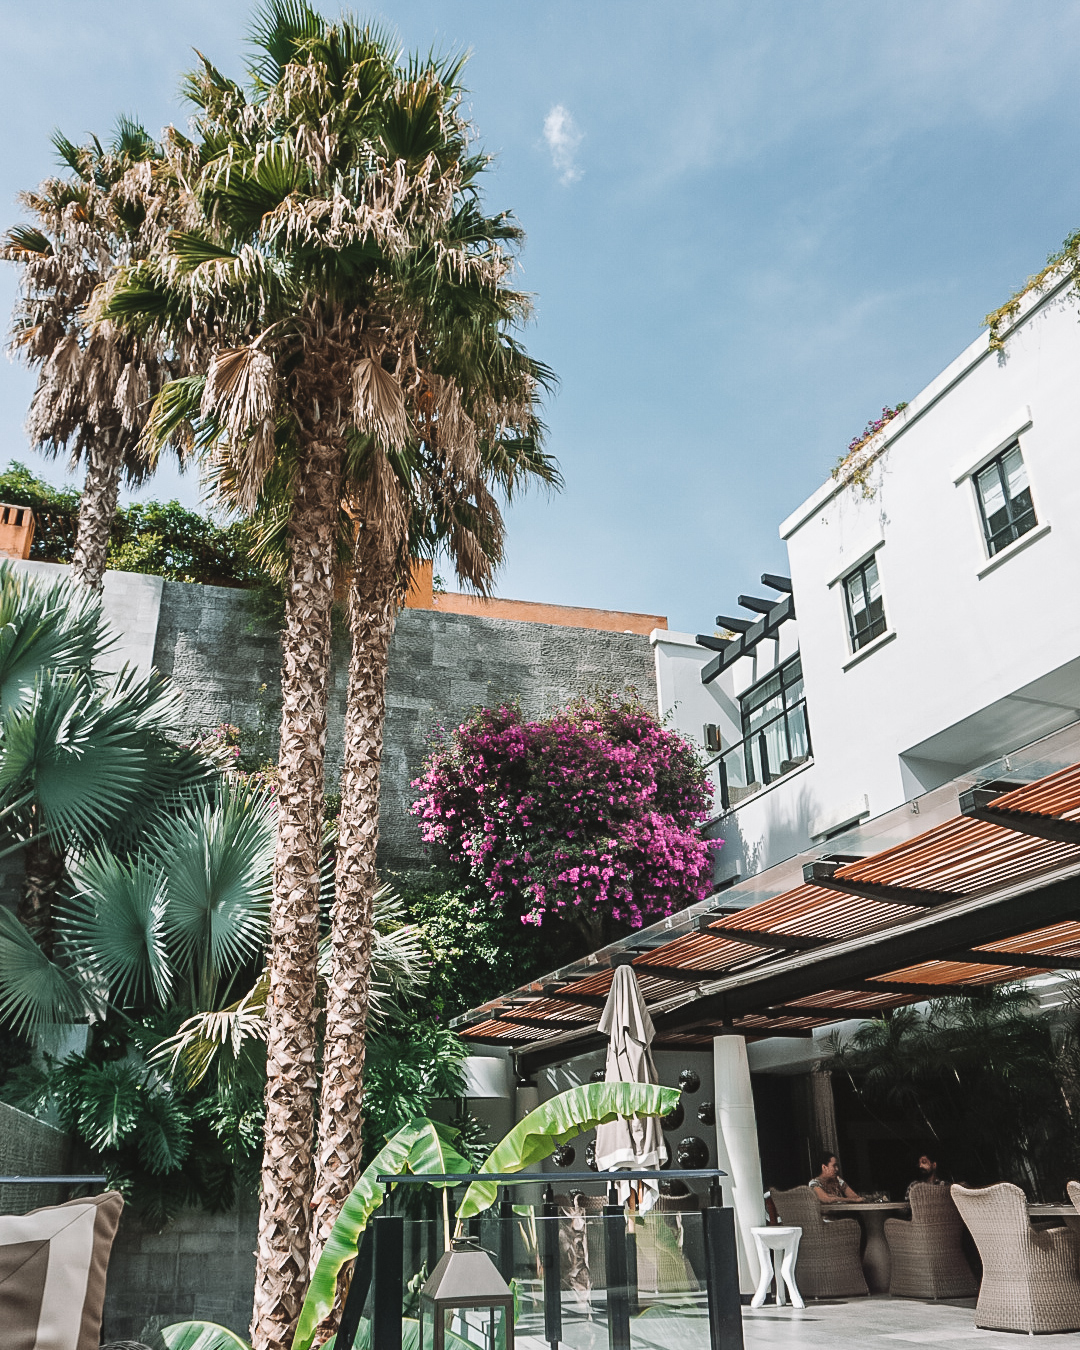 Hotel Matilda - best city hotel in mexico